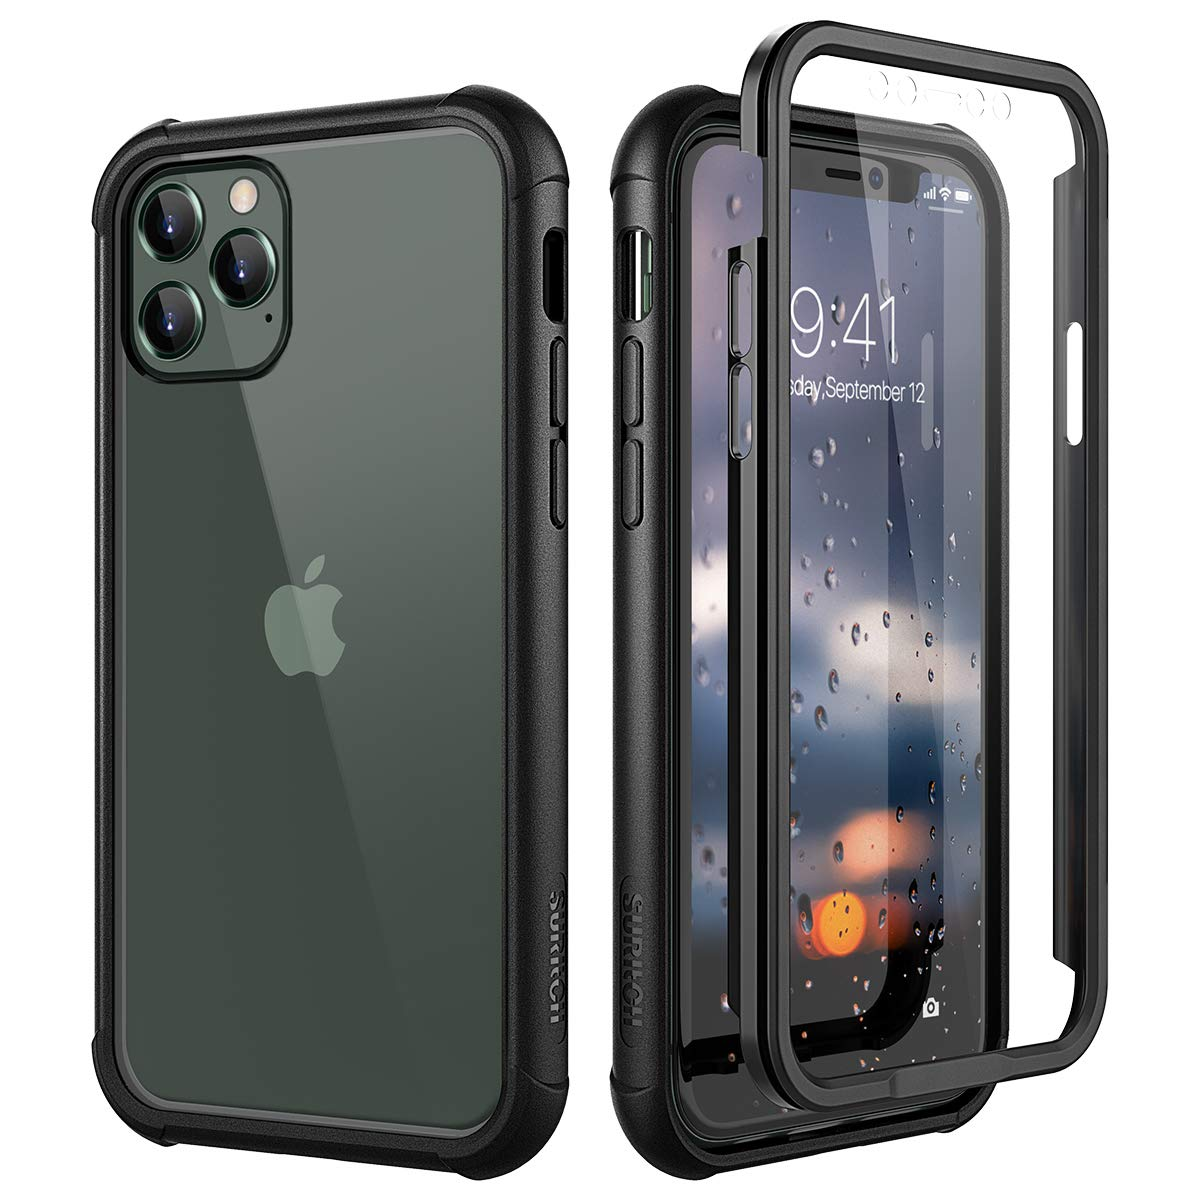 """SURITCH Clear Case for iPhone 11 Pro Max,【Built in Screen Protector】【Support Wireless Charging】 Hybrid Protection Hard Shell+Soft TPU Bumper Rugged Case Shockproof for iPhone 11 Pro Max 6.5""""(Black)"""